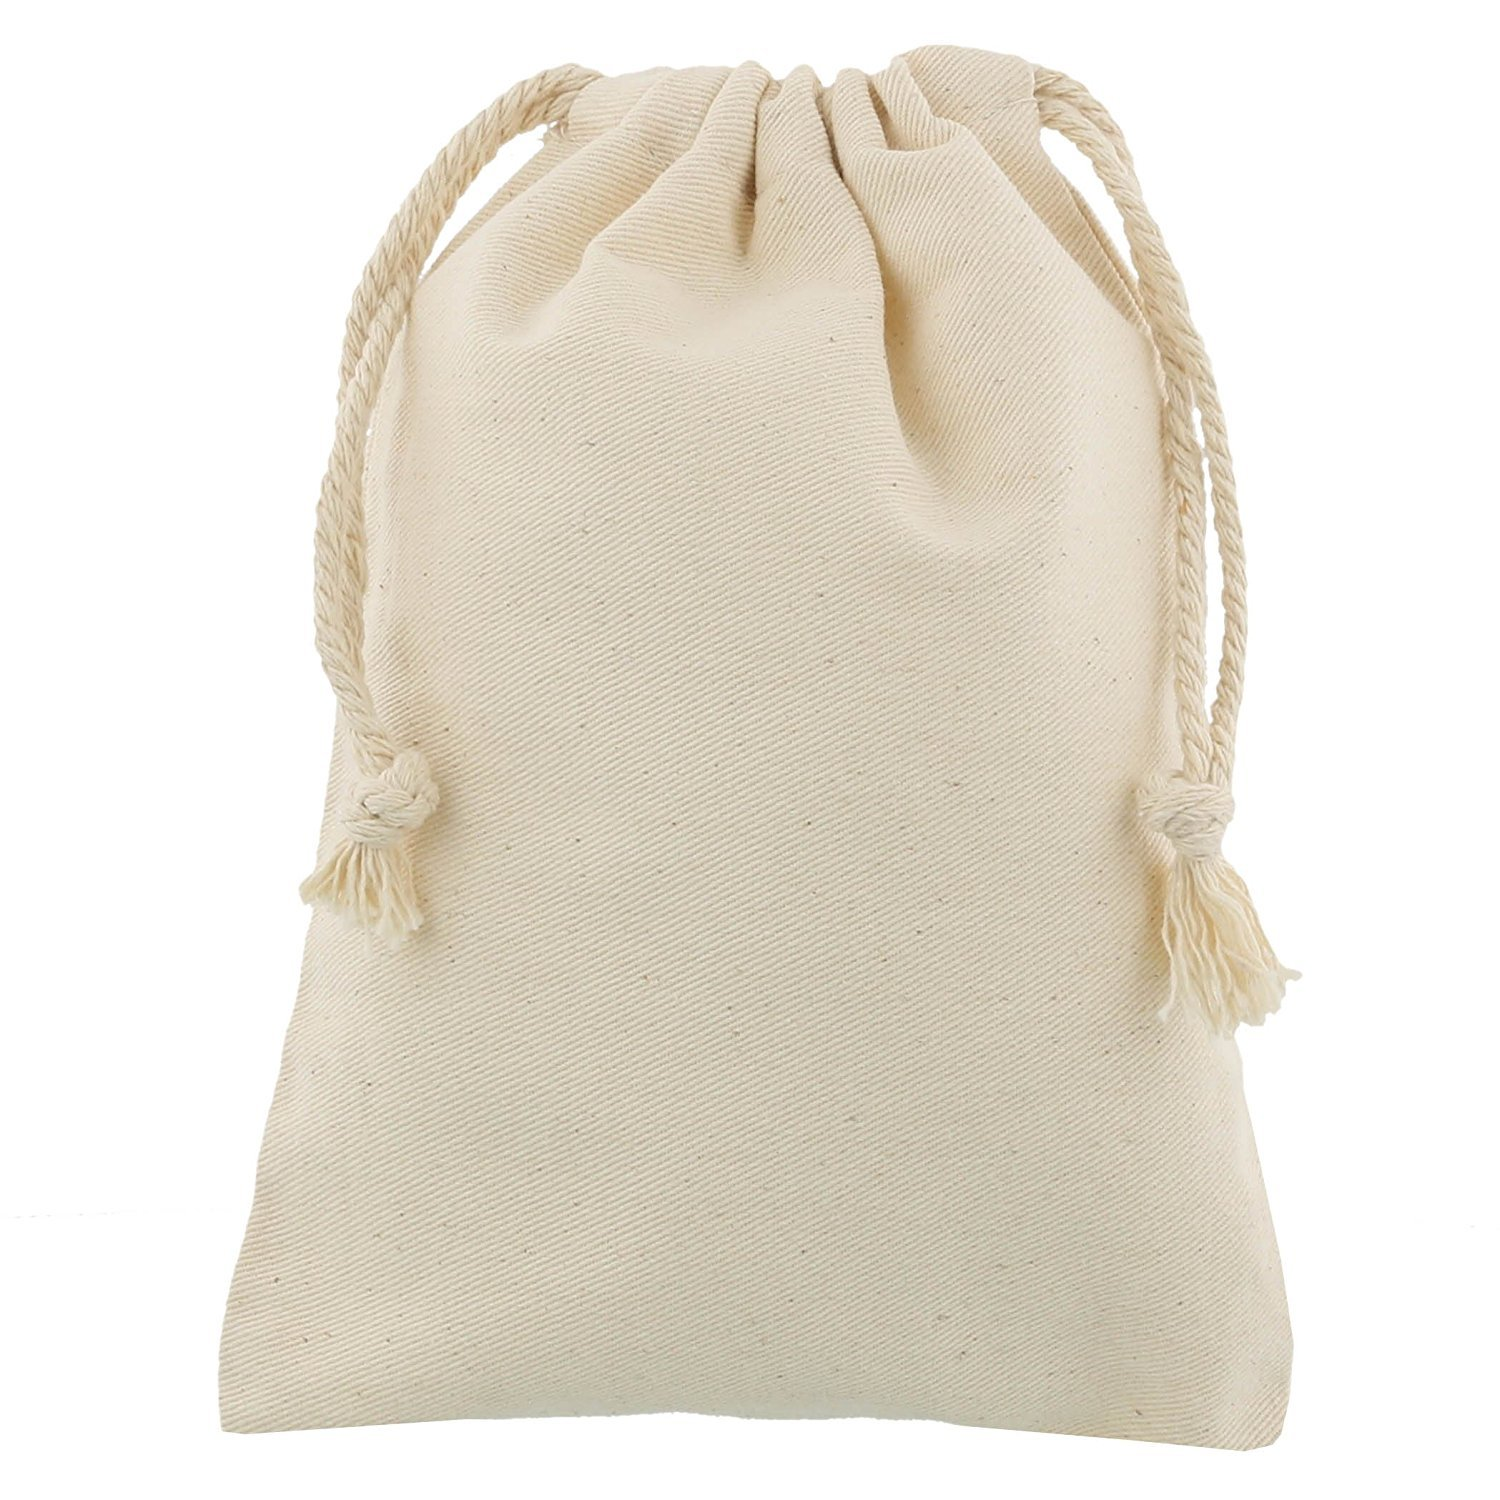 100 pcs small 100% cotton drawstring bags 10x15 cm shingyo